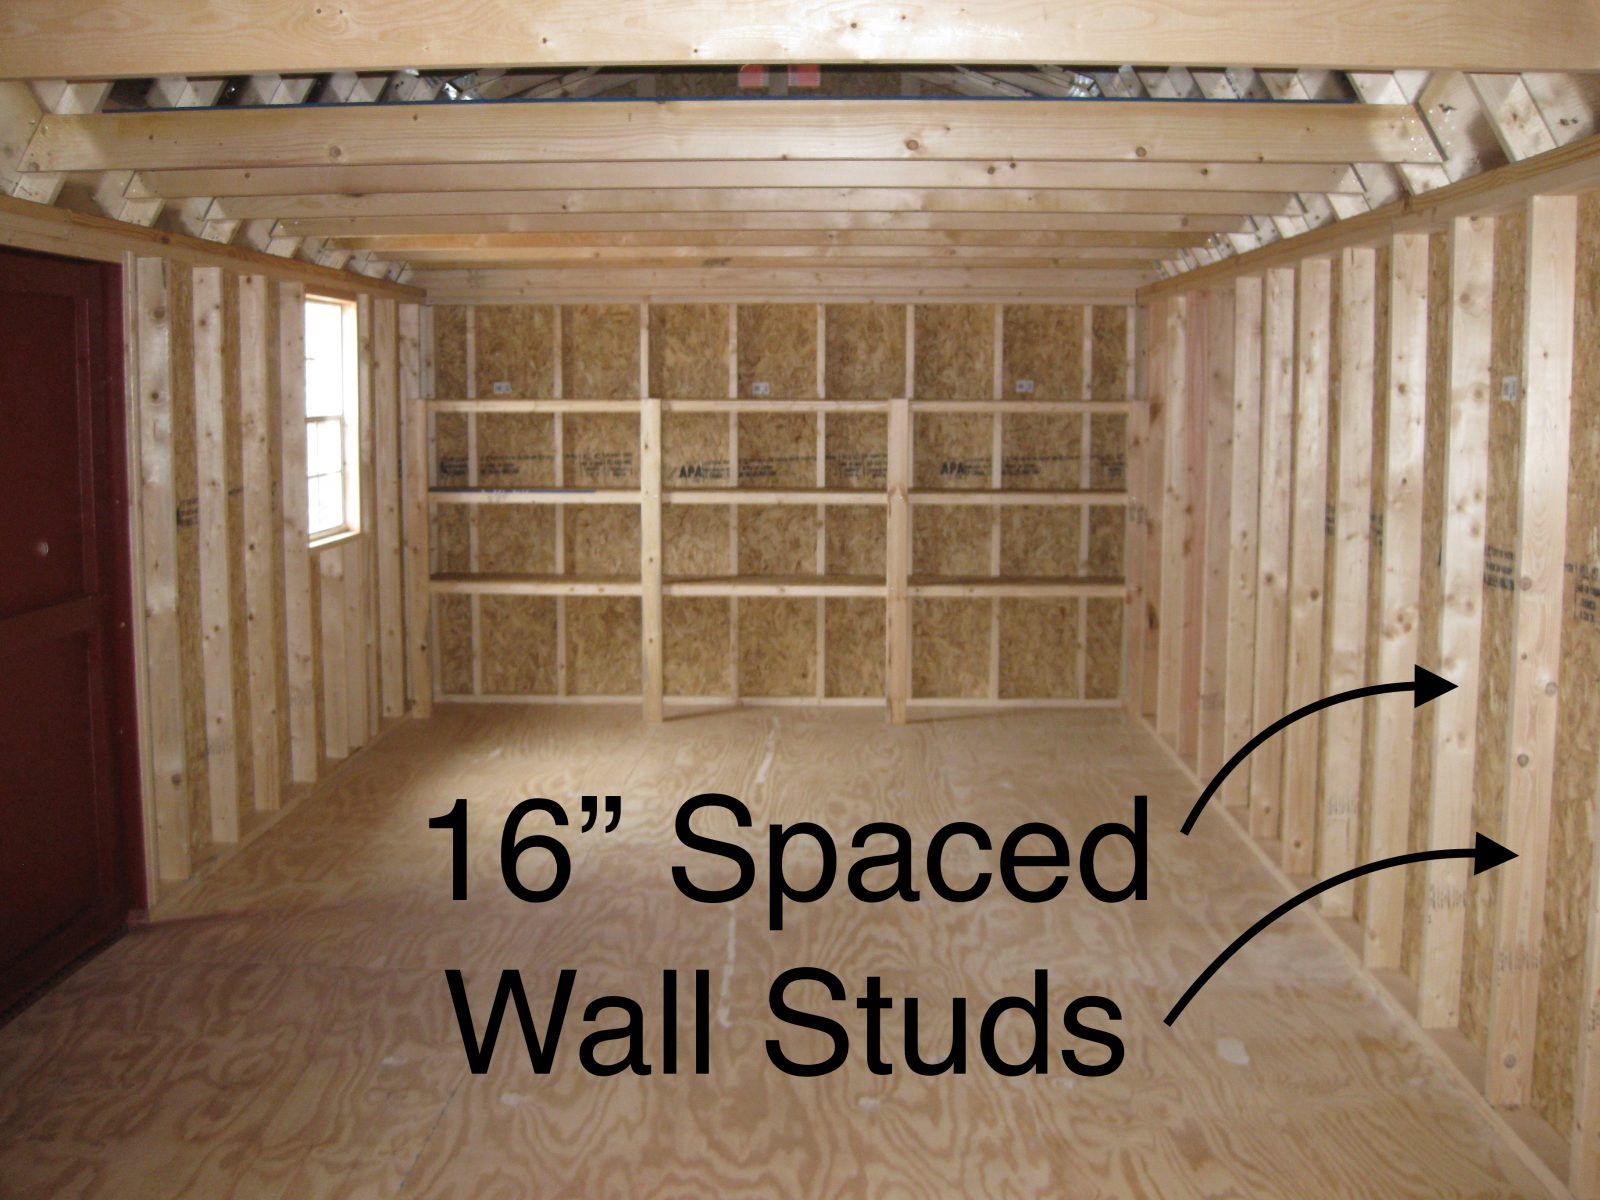 Portable Storage Building Prices | How Much Should a Shed Cost?